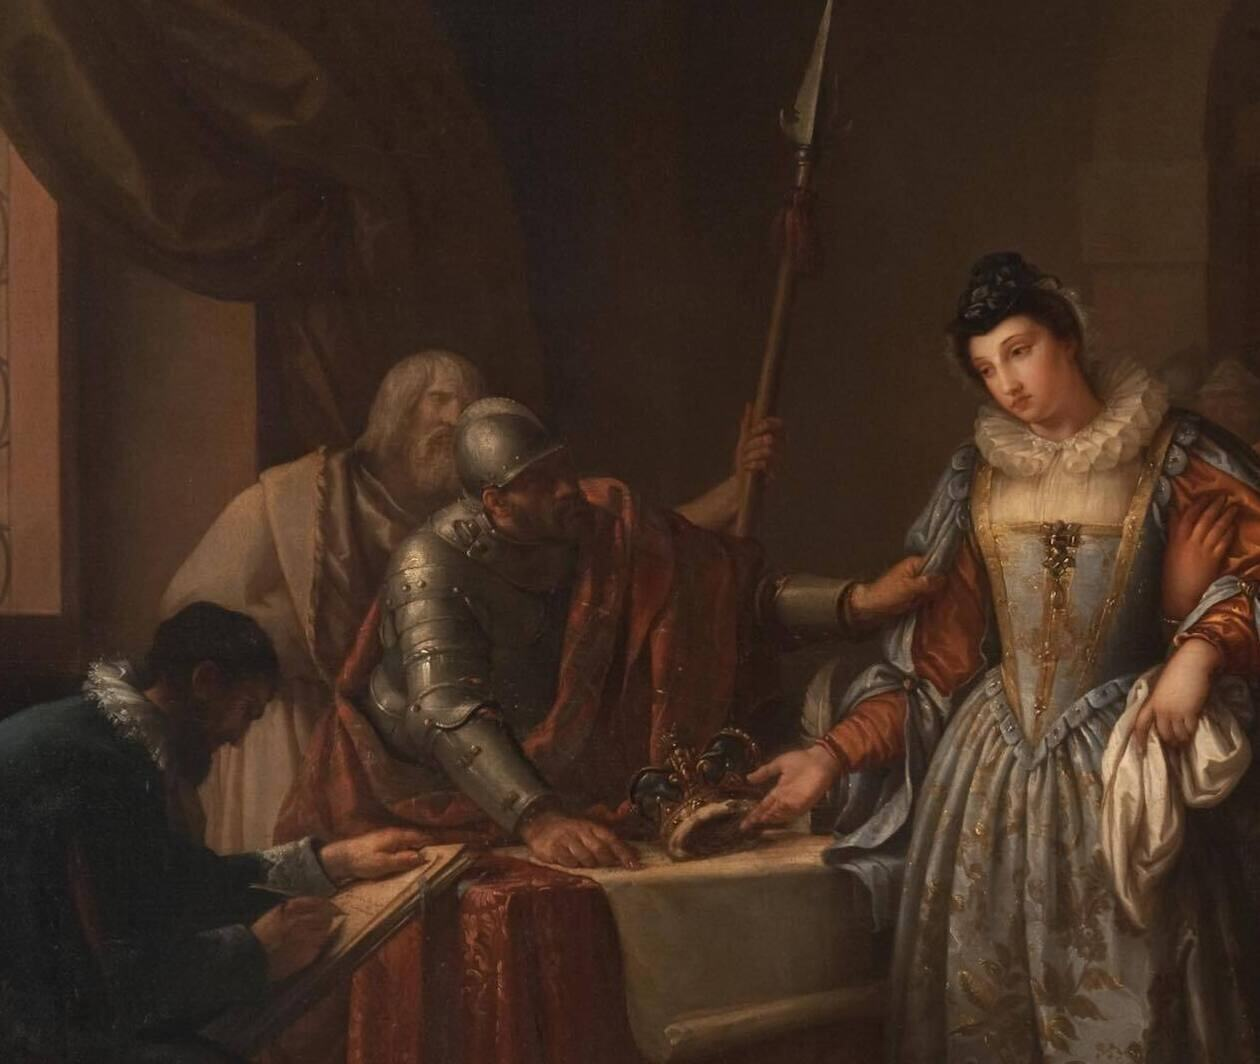 The Life and Afterlife of Mary Queen of Scots